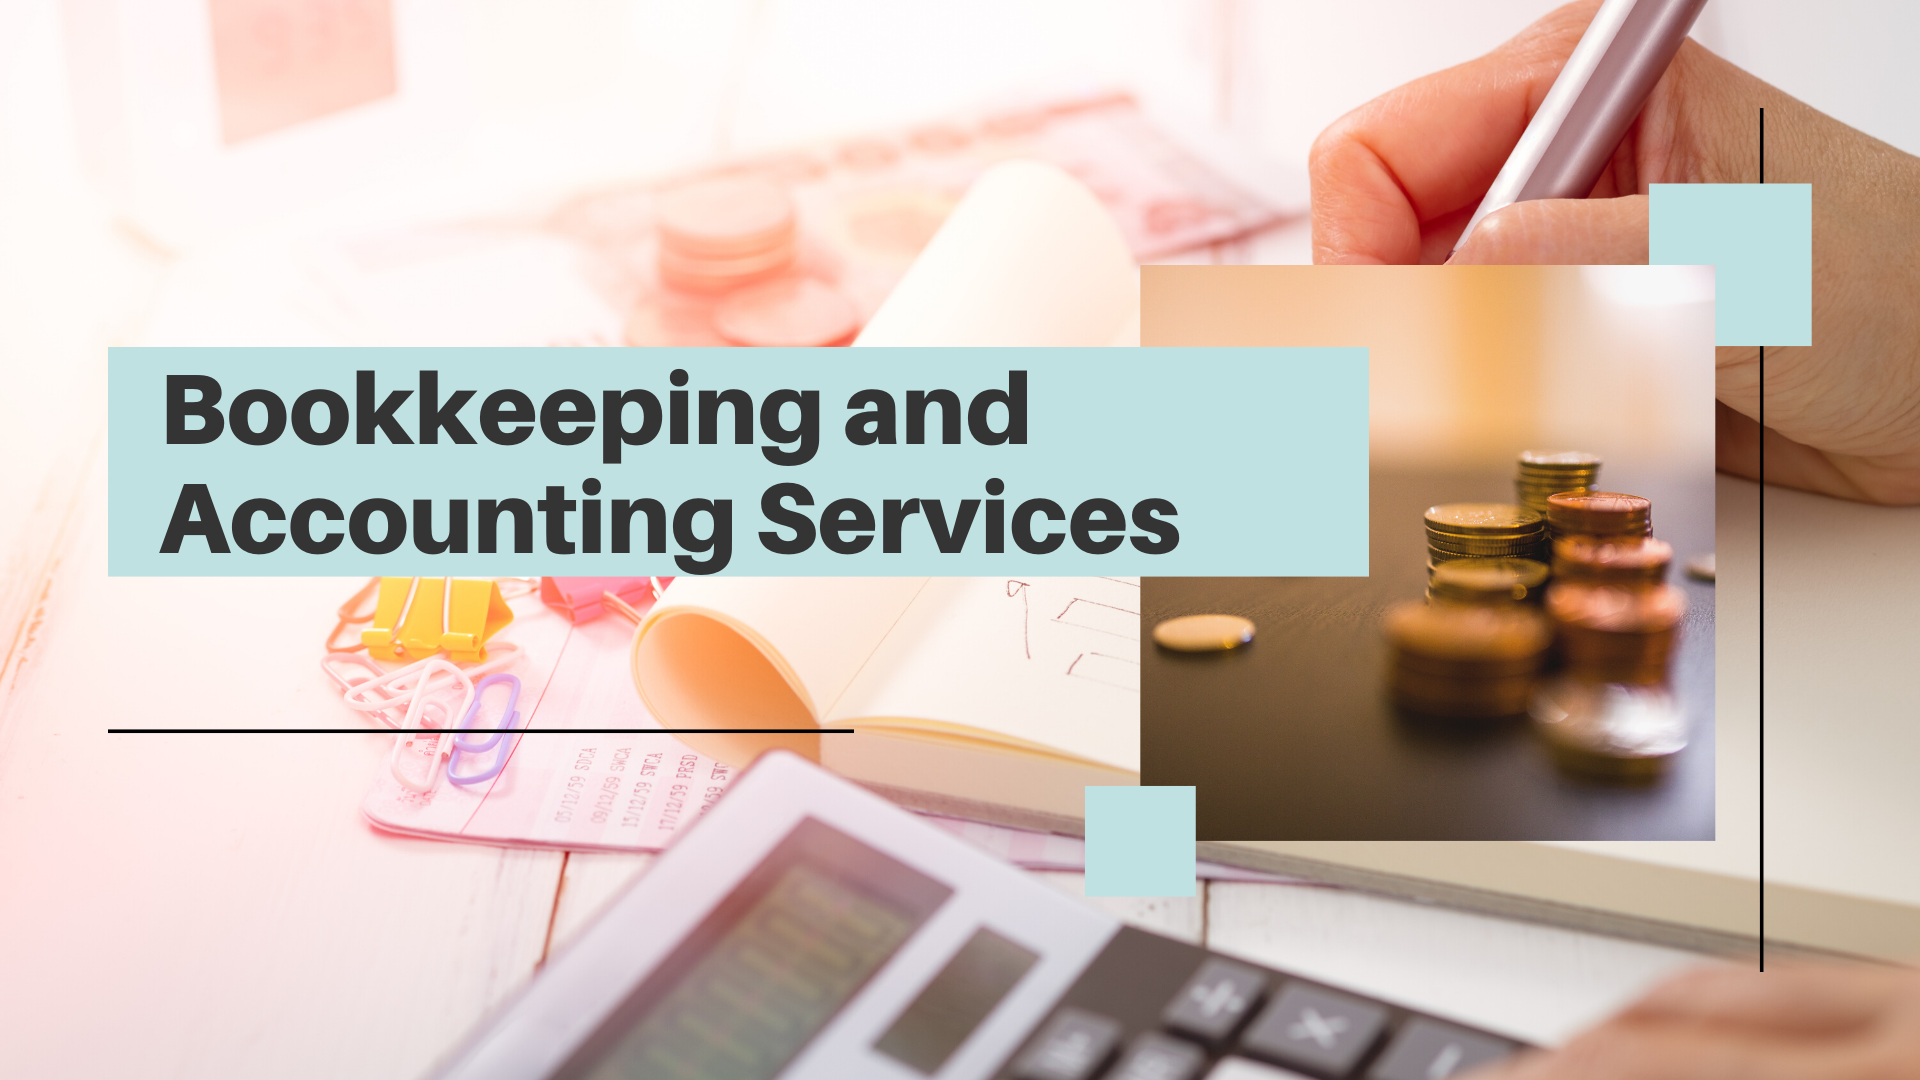 Affinity Associates Offer Discounted Priced Bookkeeping and Accounting Services for Small Businesses in London, UK